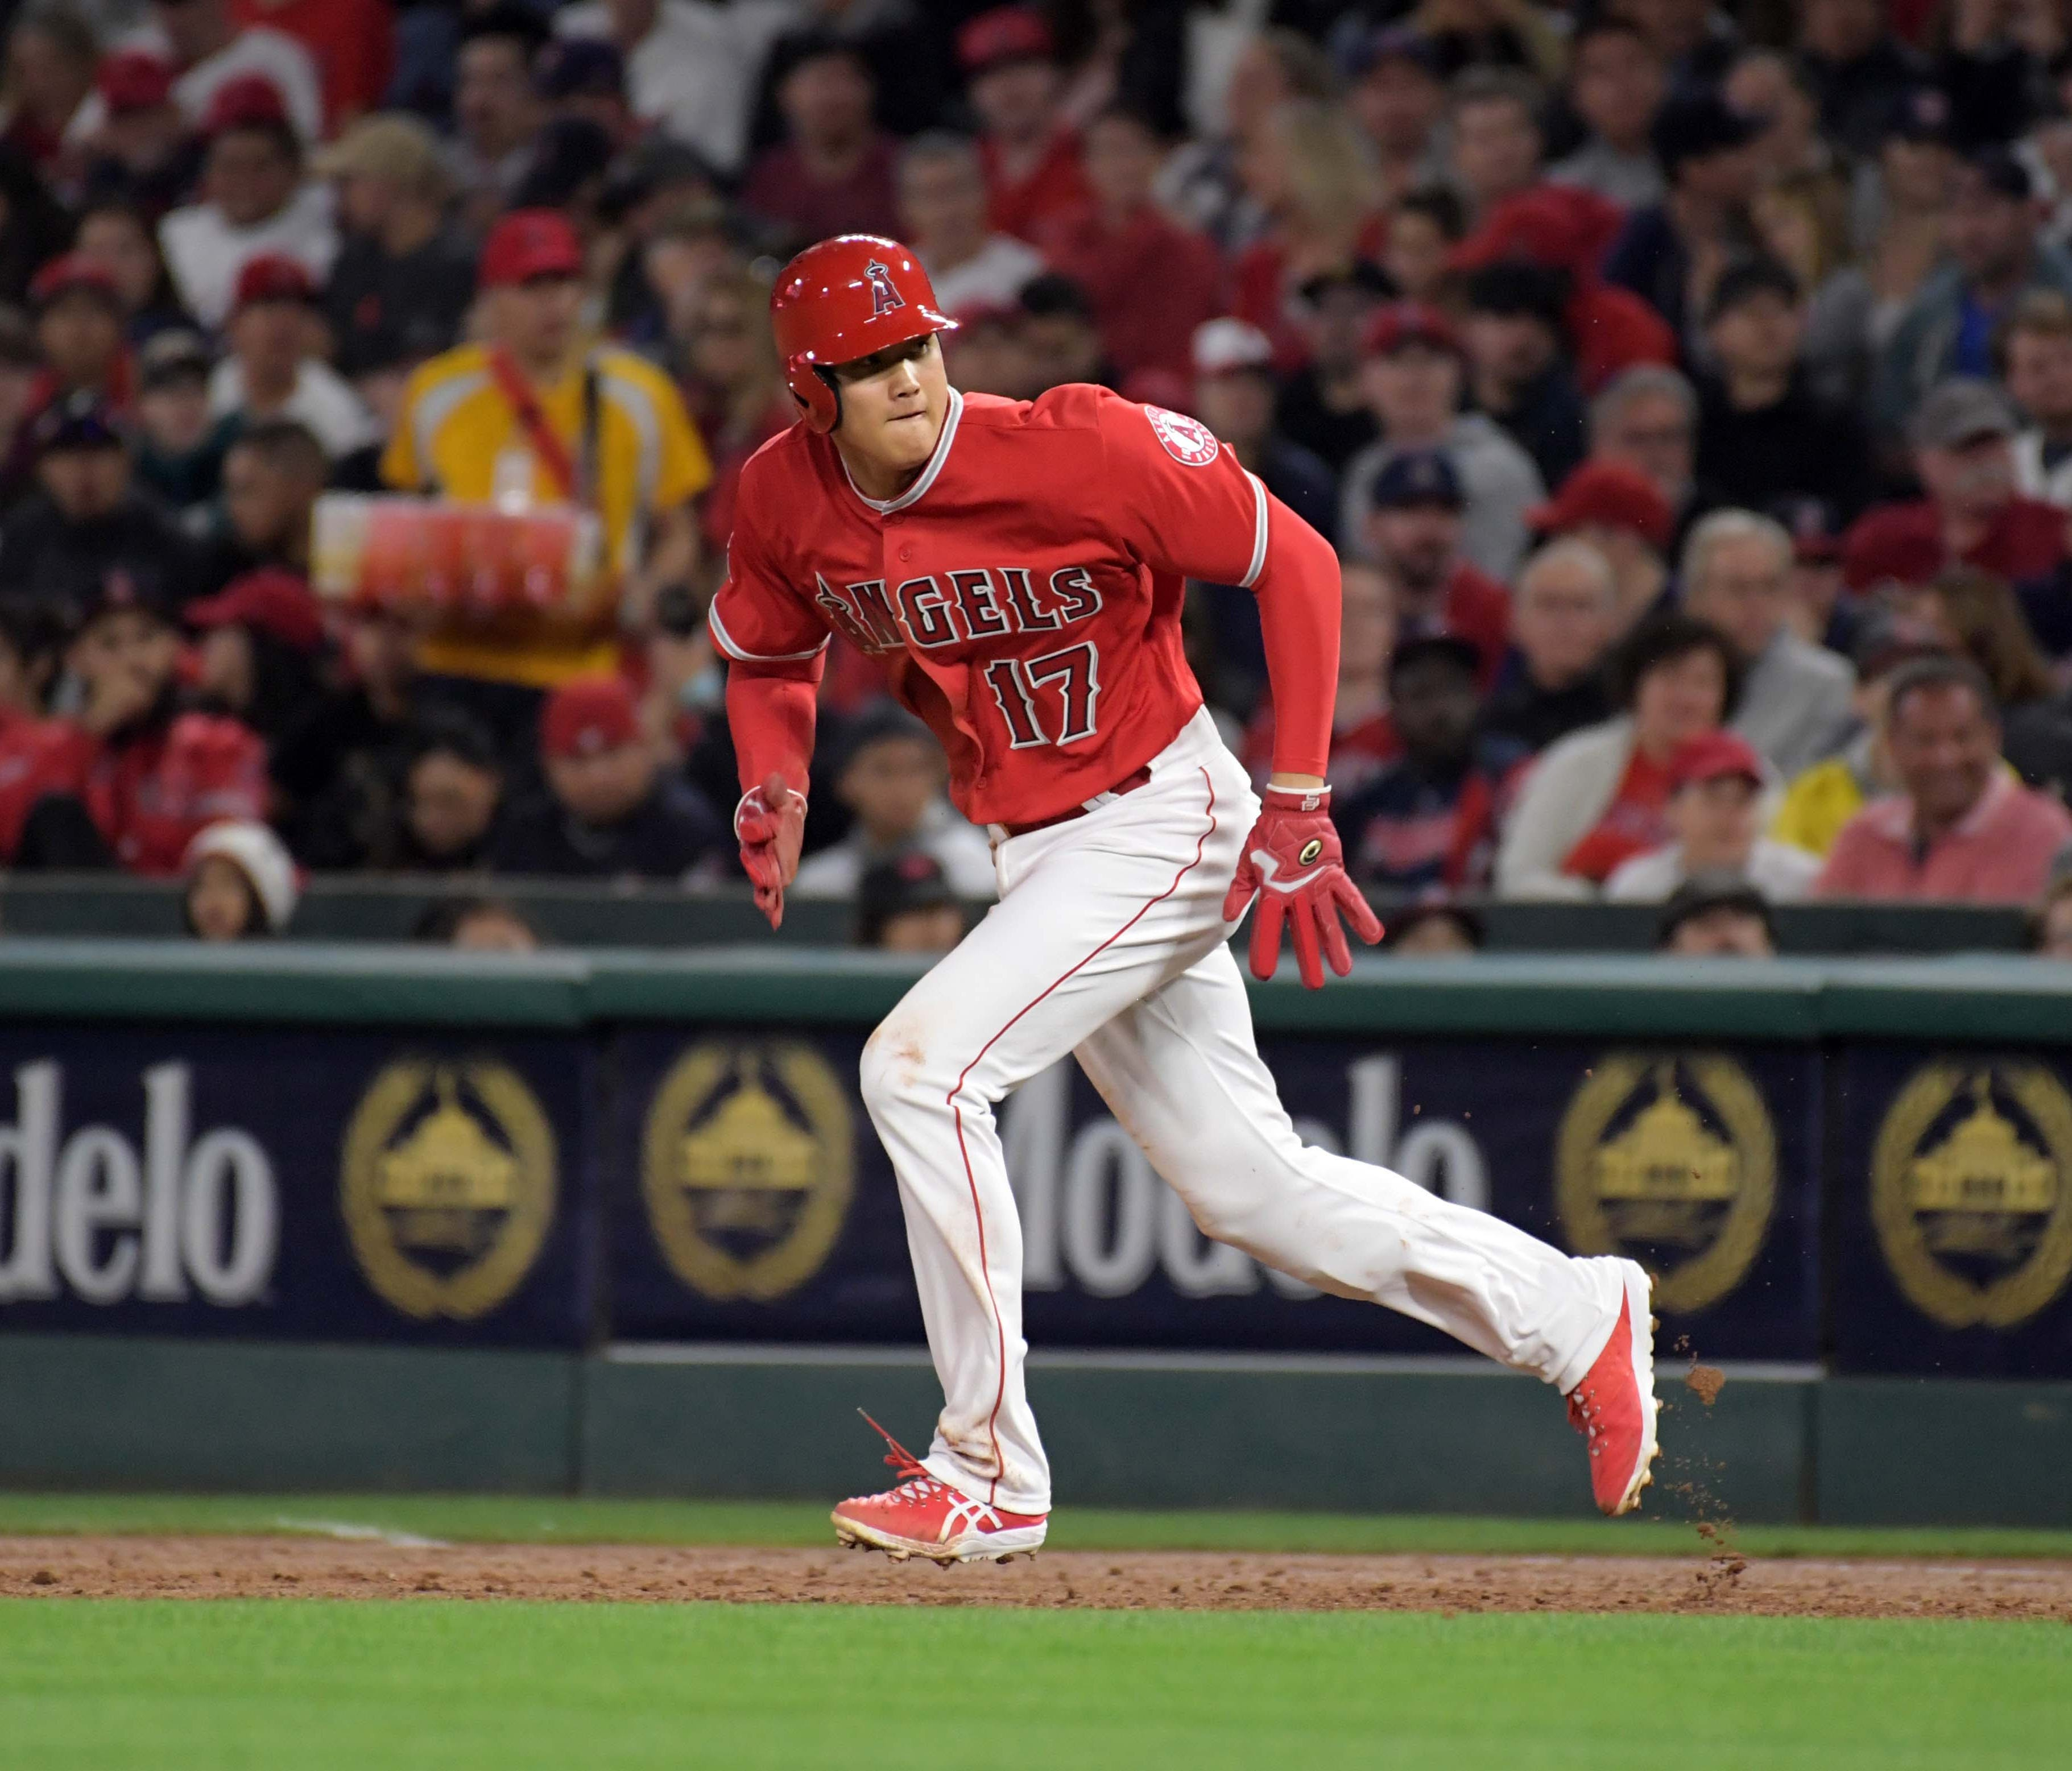 Shohei Ohtani has four hits in his first nine major league at-bats.